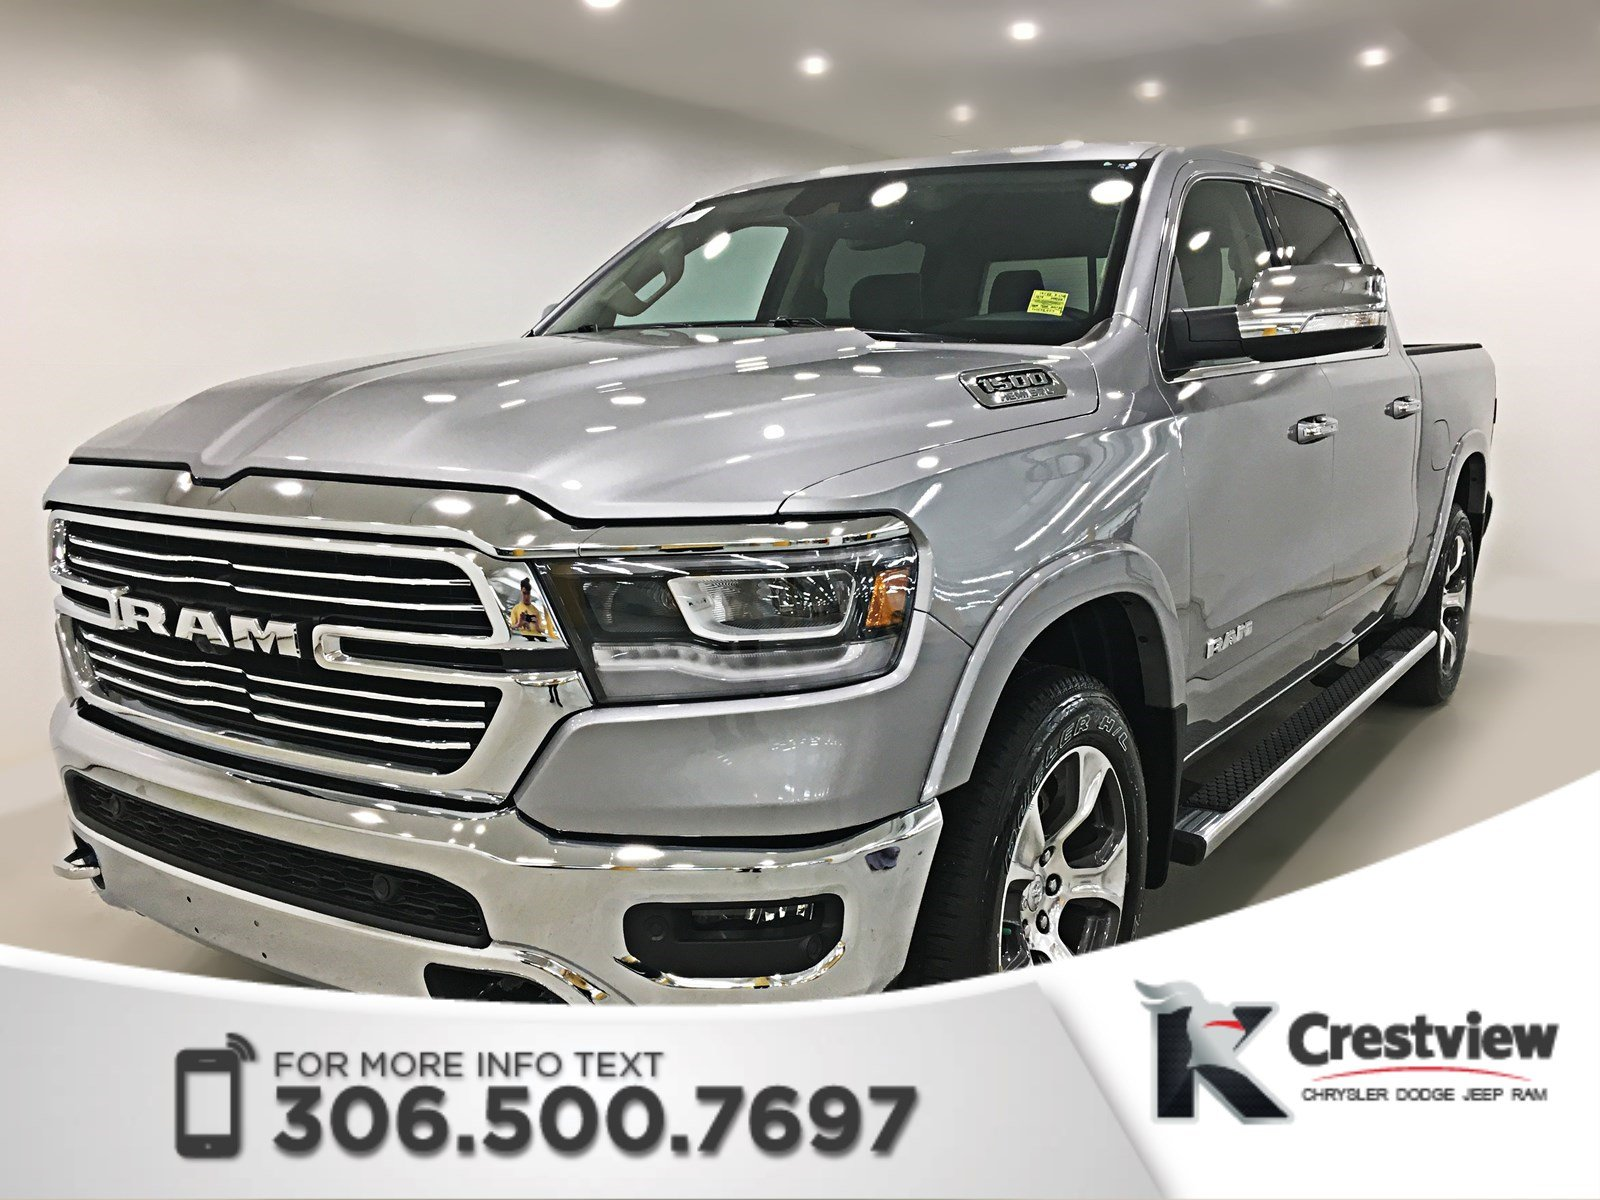 New 2019 Ram 1500 Laramie Crew Cab Panoramic Sunroof 12 Touchscreen Navigation